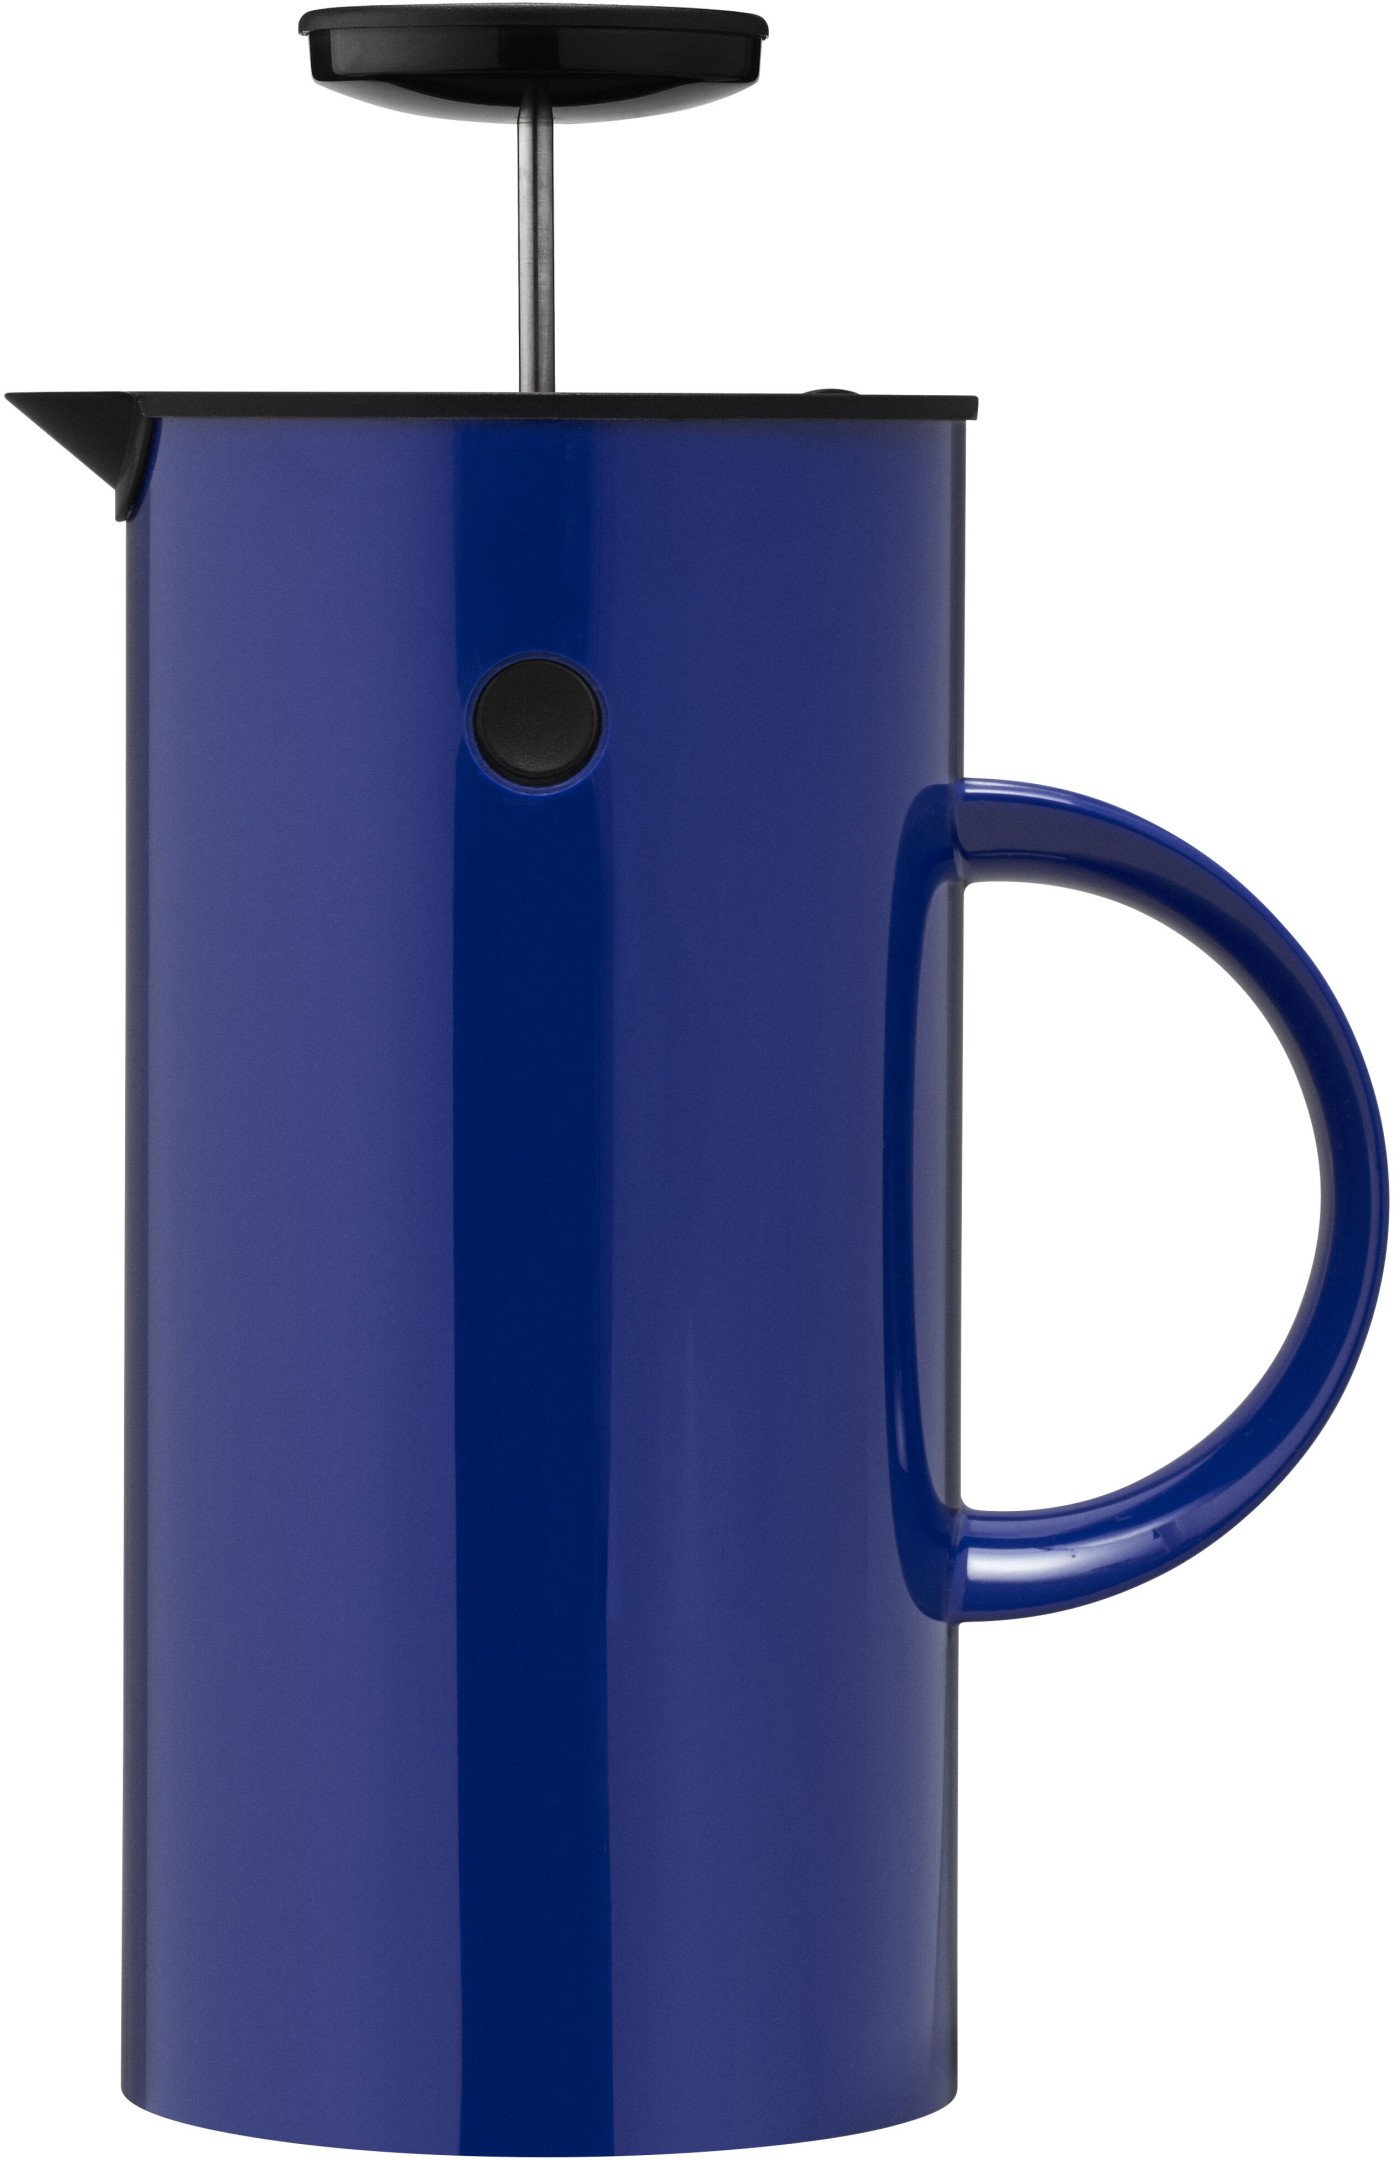 EM Press Tea Maker Ultramarine 1L by E. Magnussen, Stelton